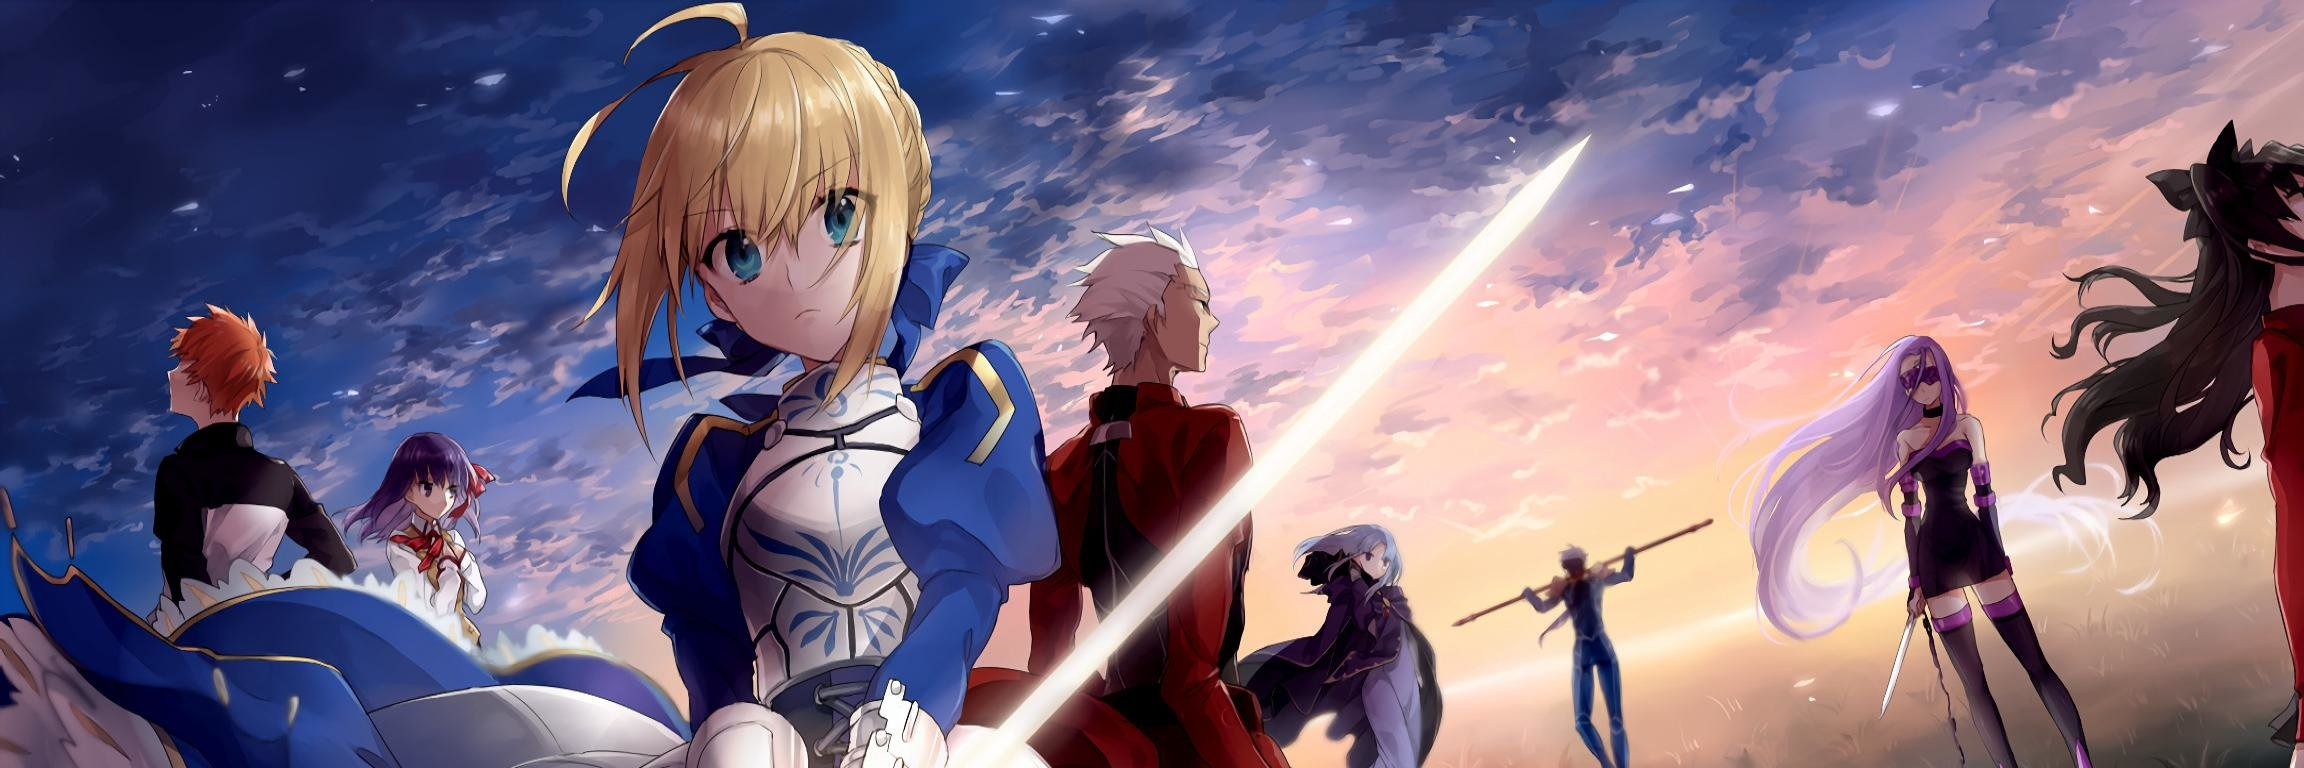 Dual Monitor Fate Stay Night Wallpapers Hd Backgrounds